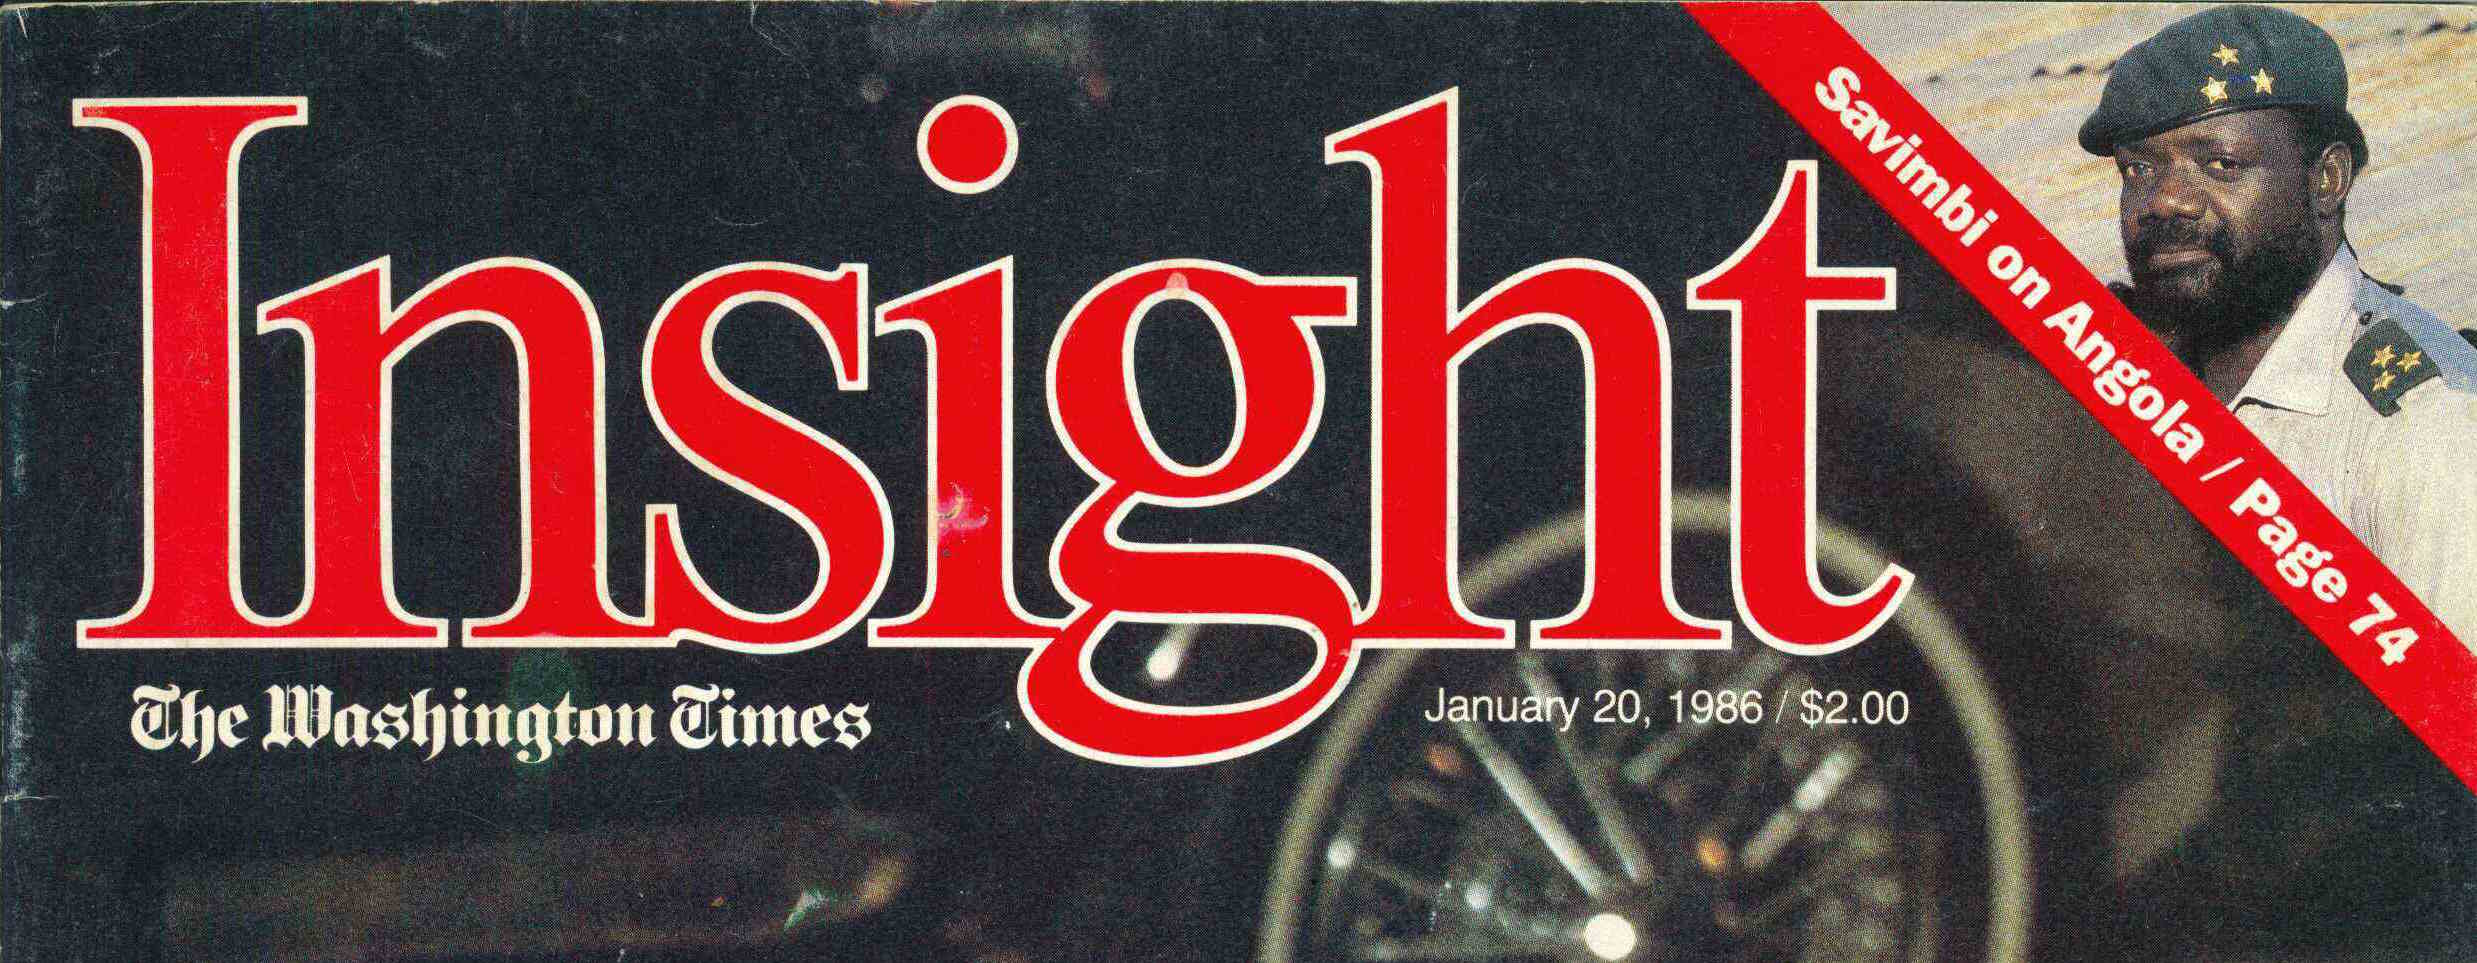 Scanned at 28-04-2018 Cropped Insight Headline